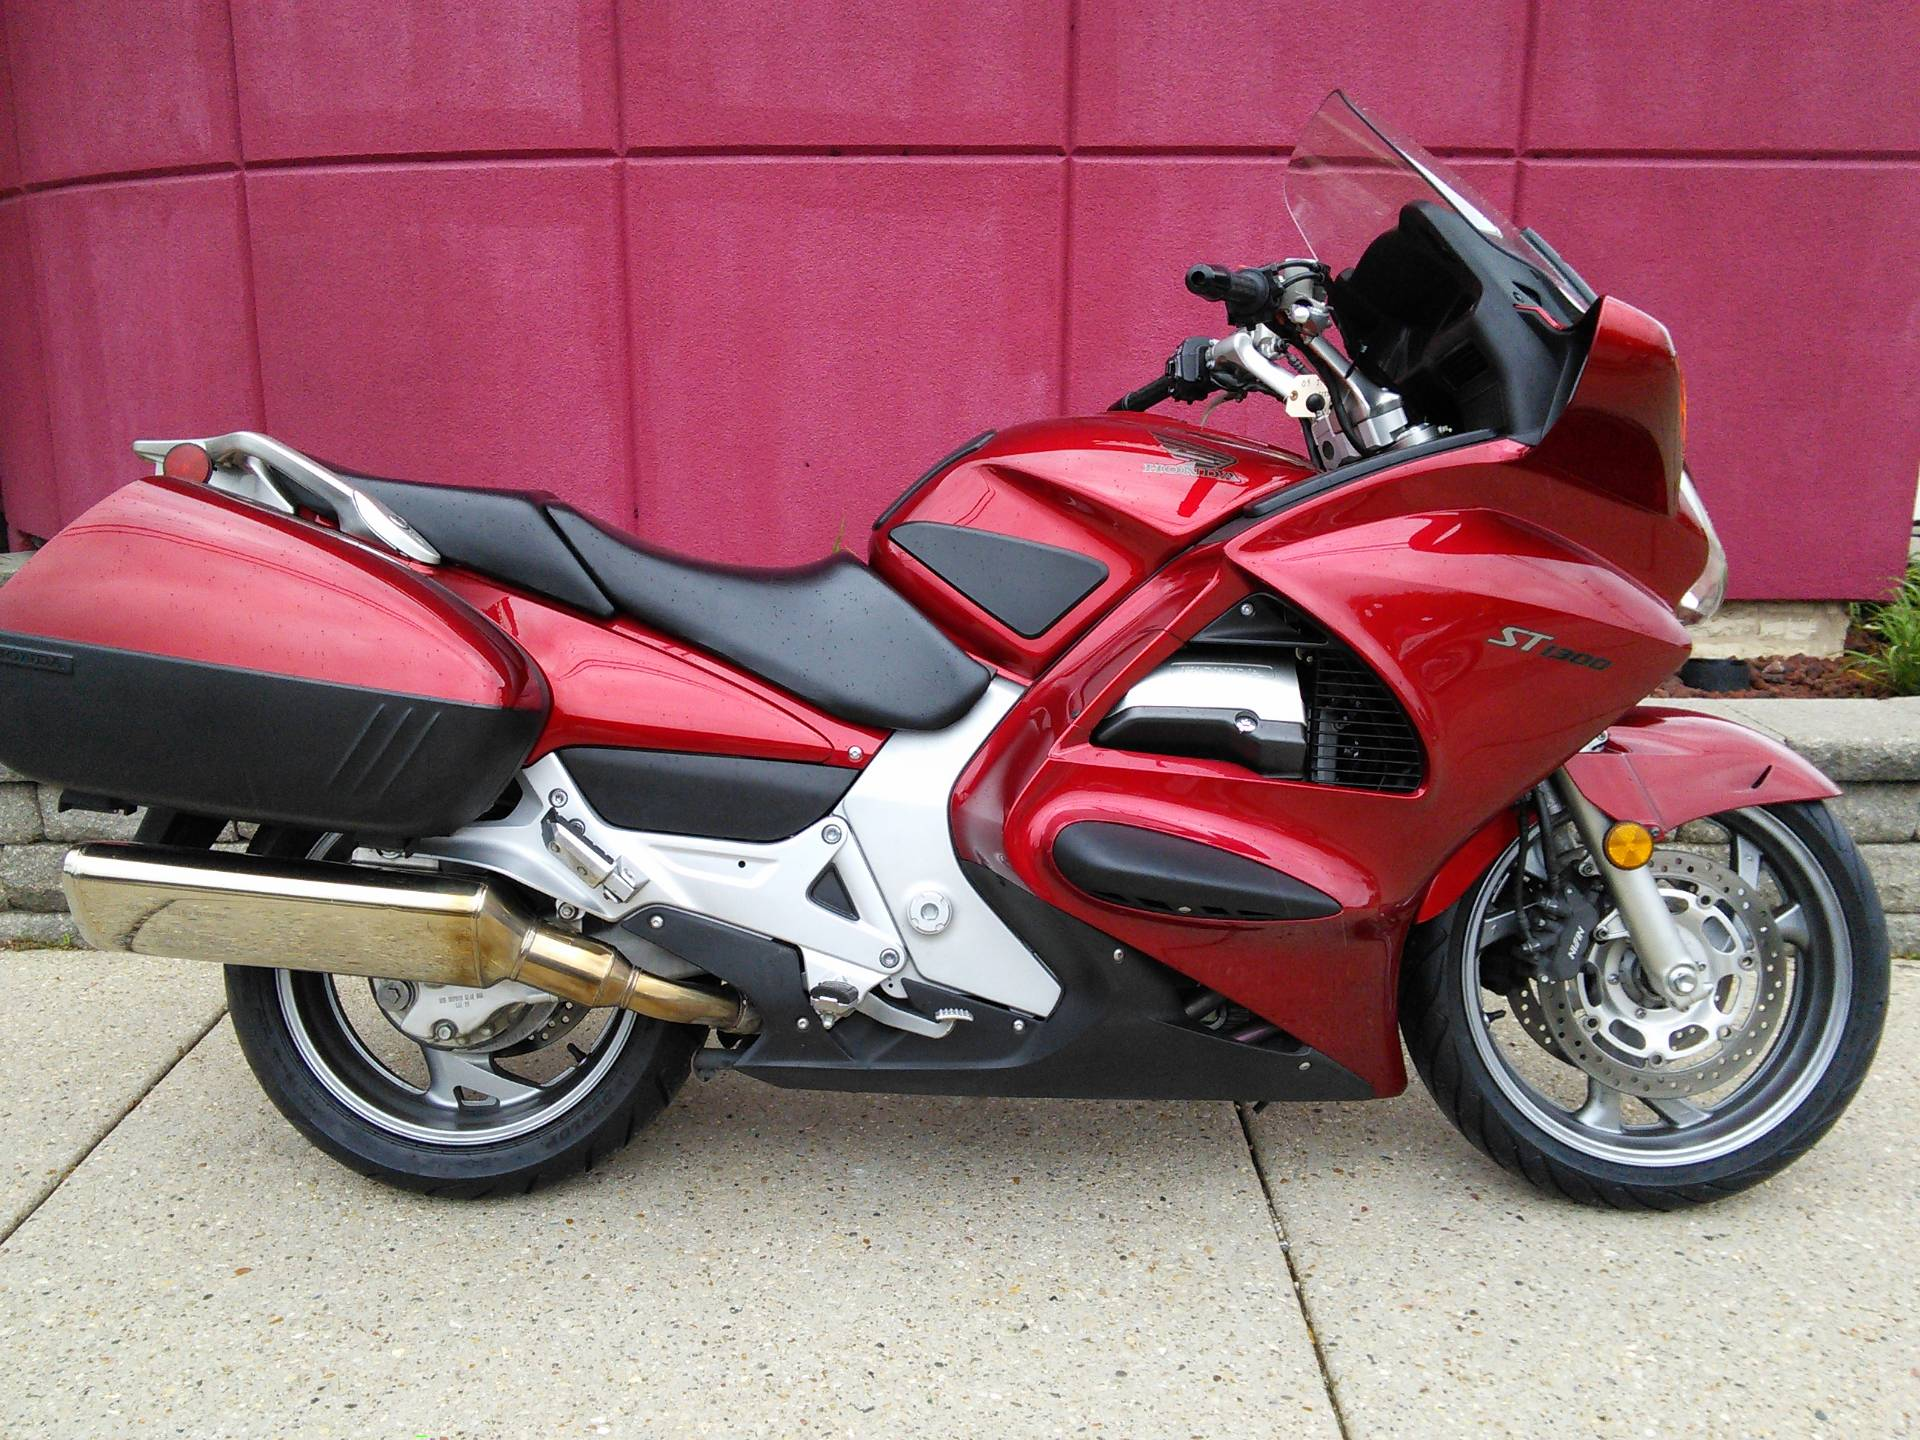 Used 2009 honda st1300 motorcycles in des plaines il for Honda des plaines